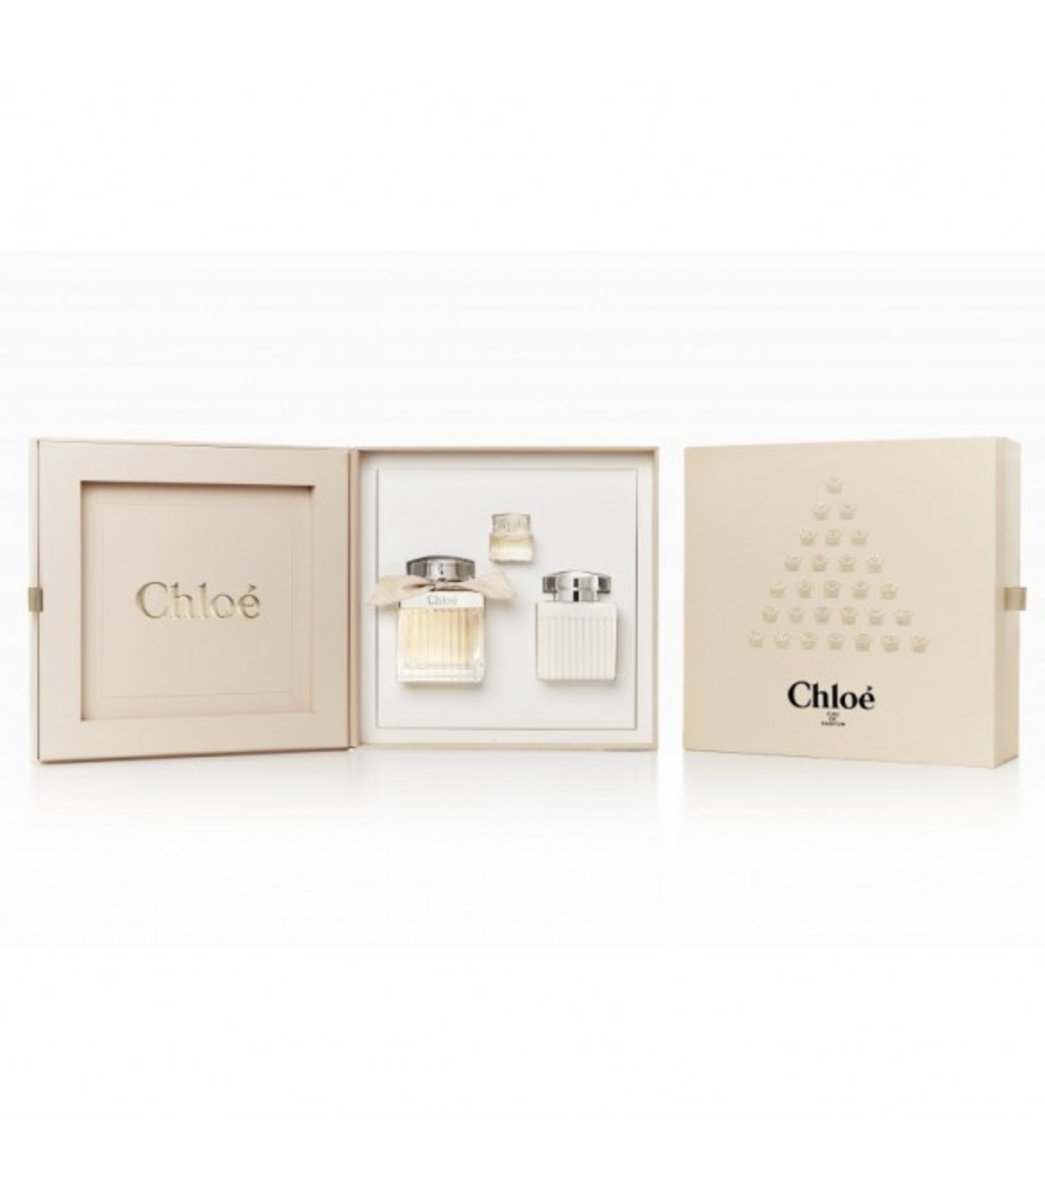 Chloe Les Parfums Set: EDP 75ml, Body Lotion 100ml, EDP 5ml [Parallel Import]